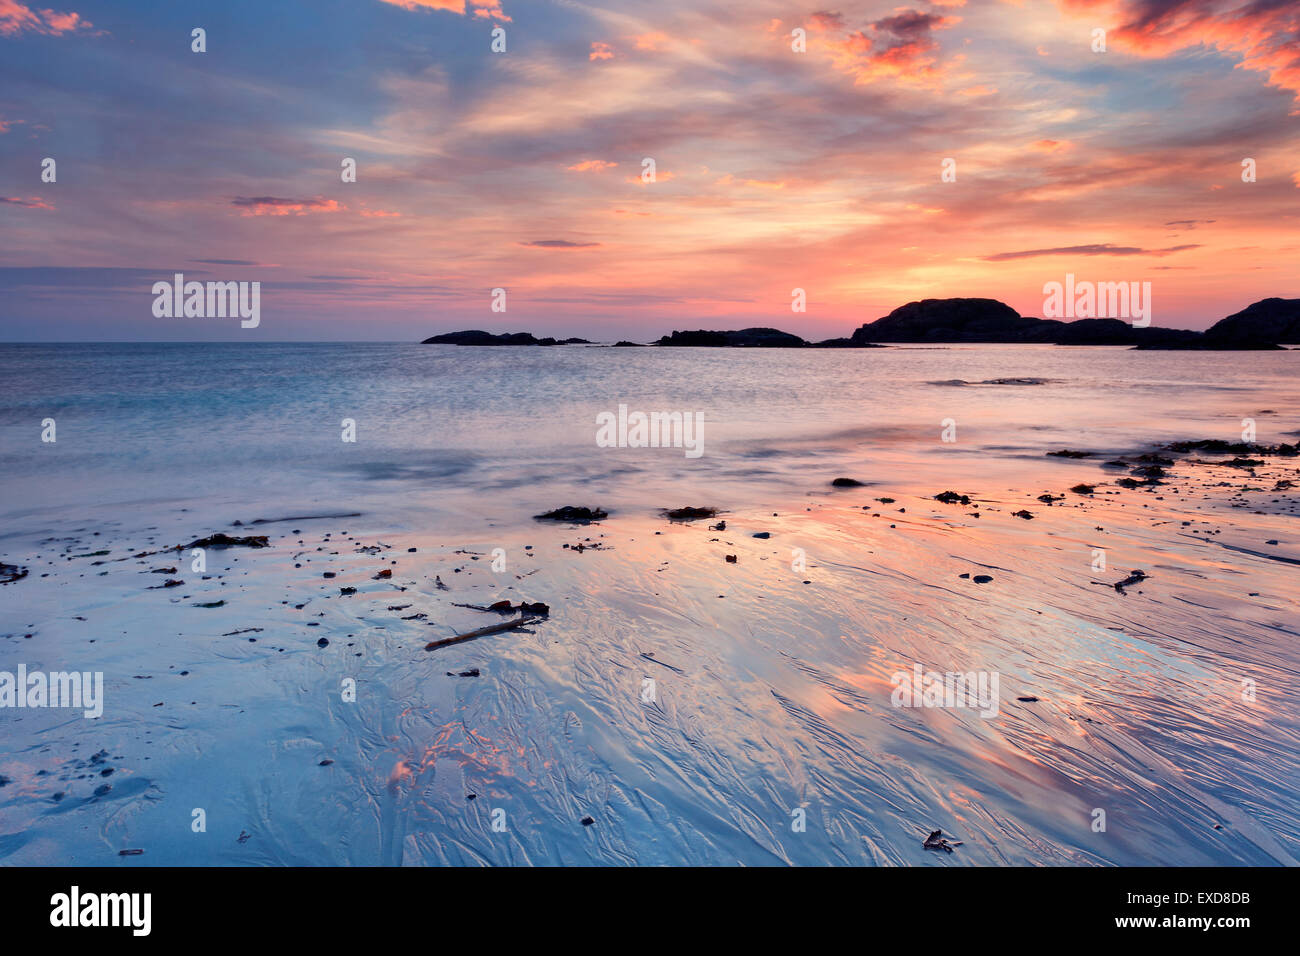 Stunning sunset on the beach of Iona, Hebrides, Scotland - Stock Image